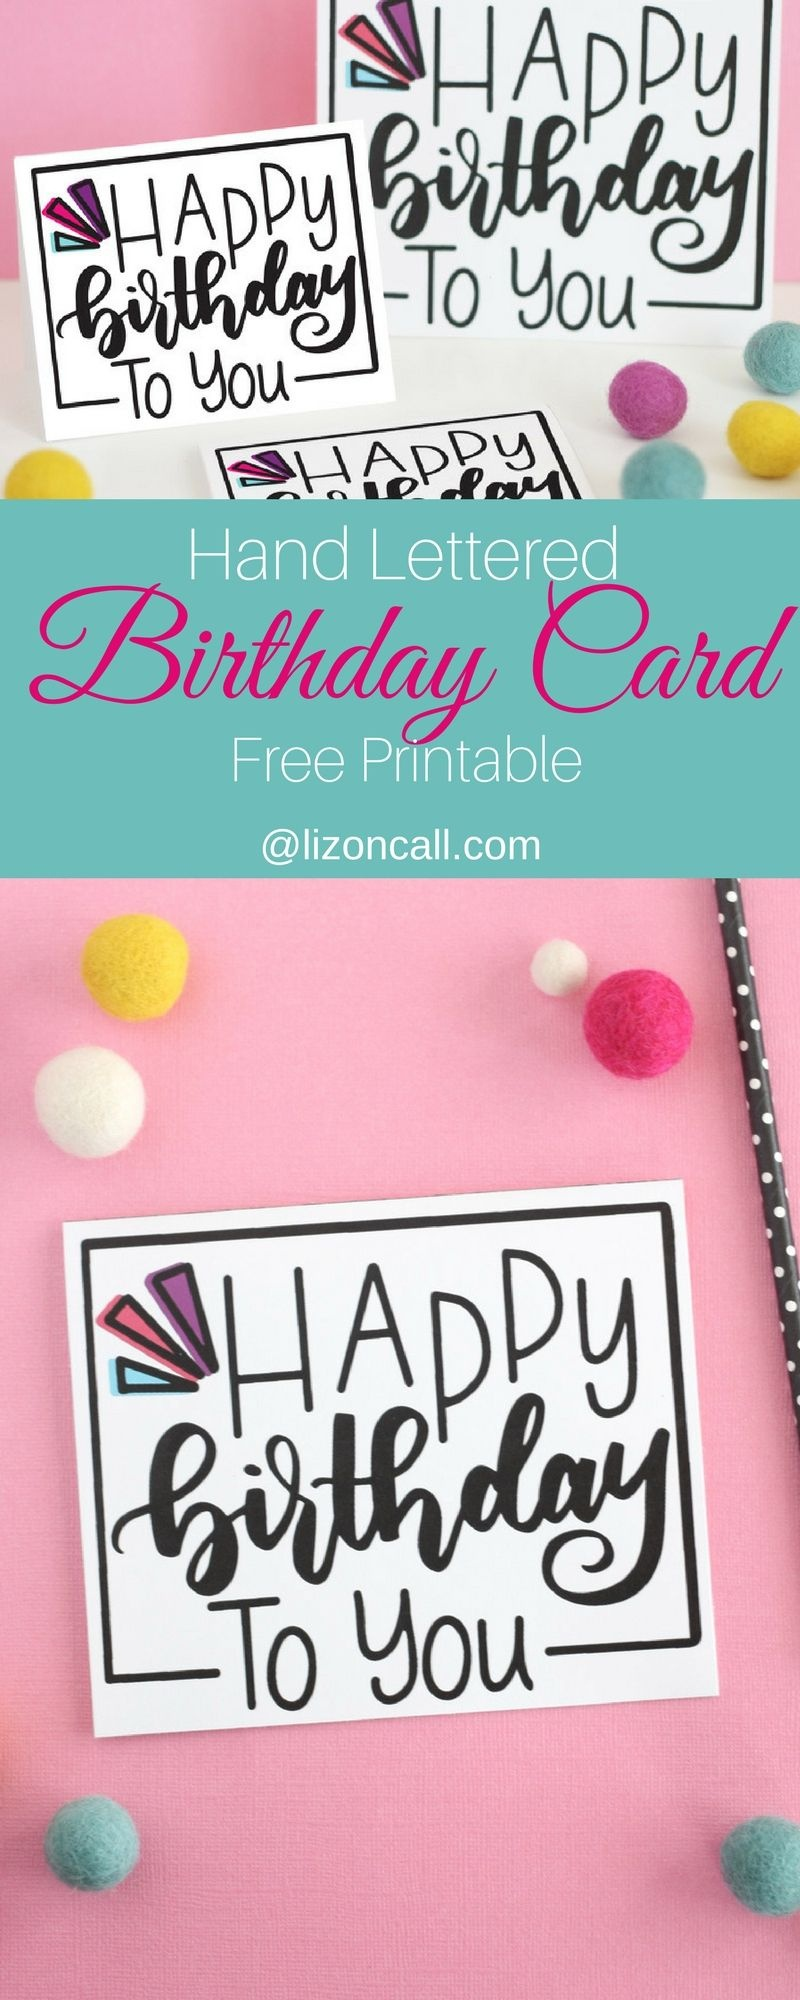 Hand Lettered Free Printable Birthday Card   Lettering   Free - Free Printable Birthday Cards For Your Best Friend